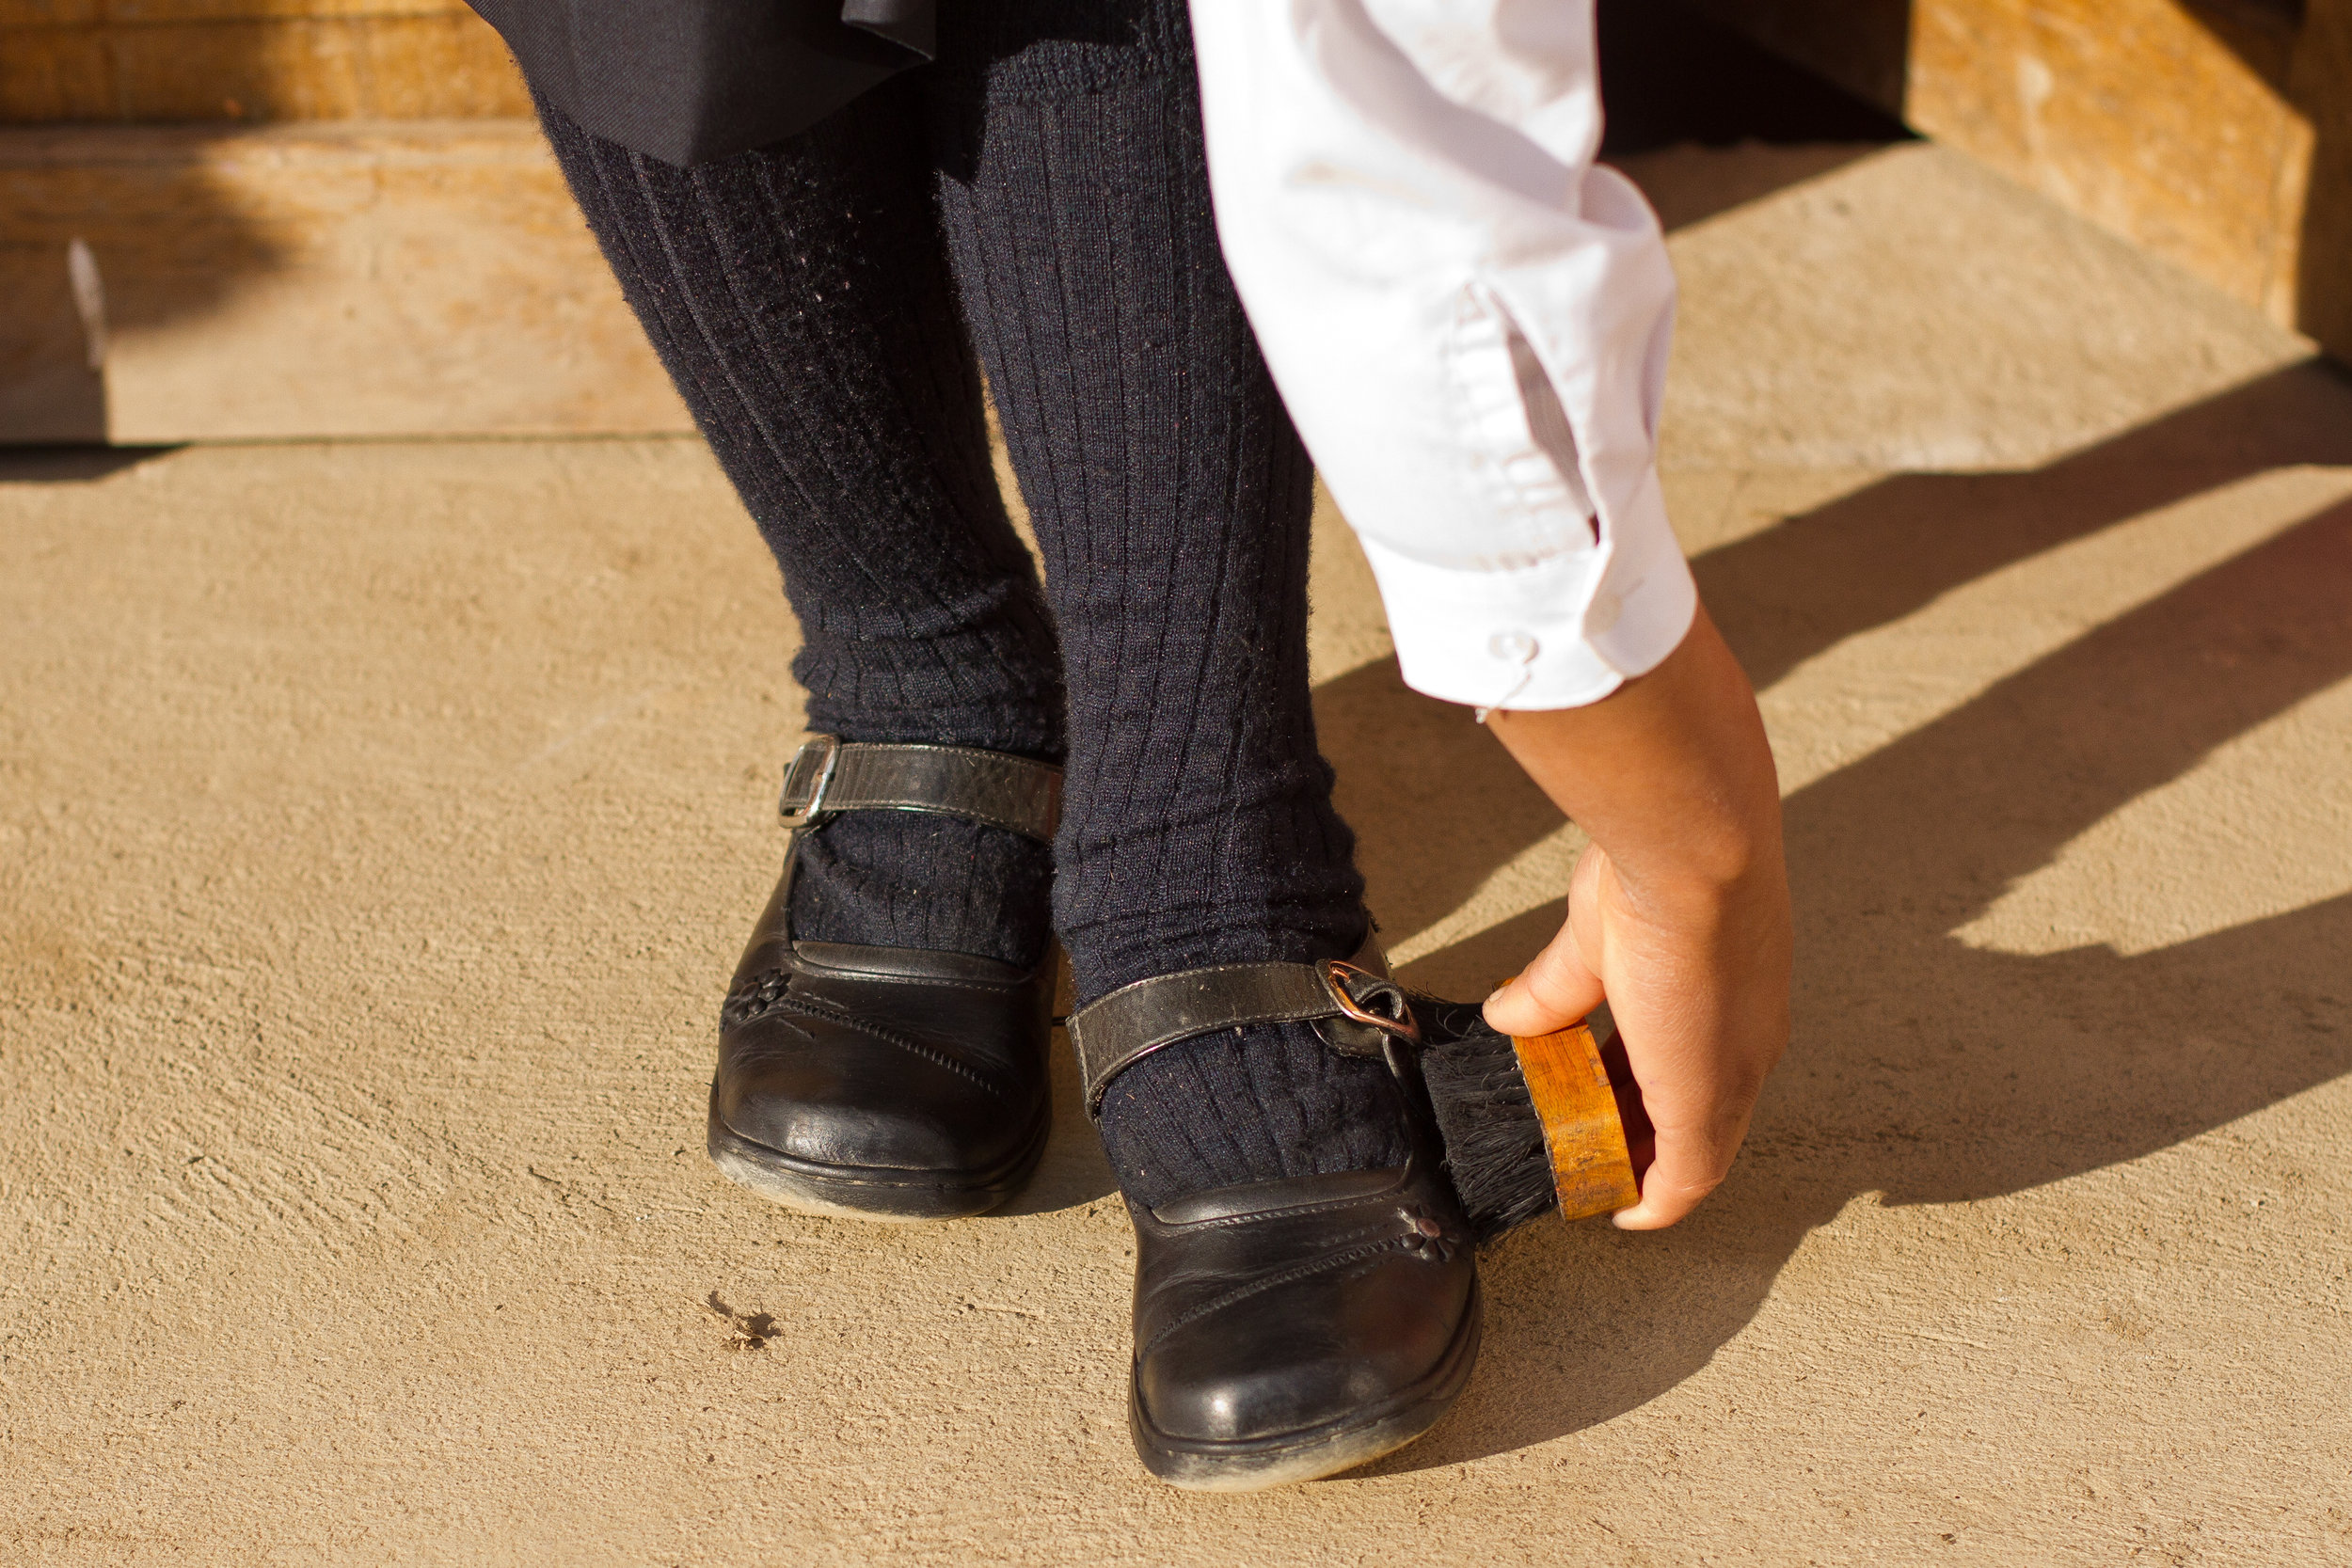 A She's the First Scholar polishes her shoes before heading off to school.